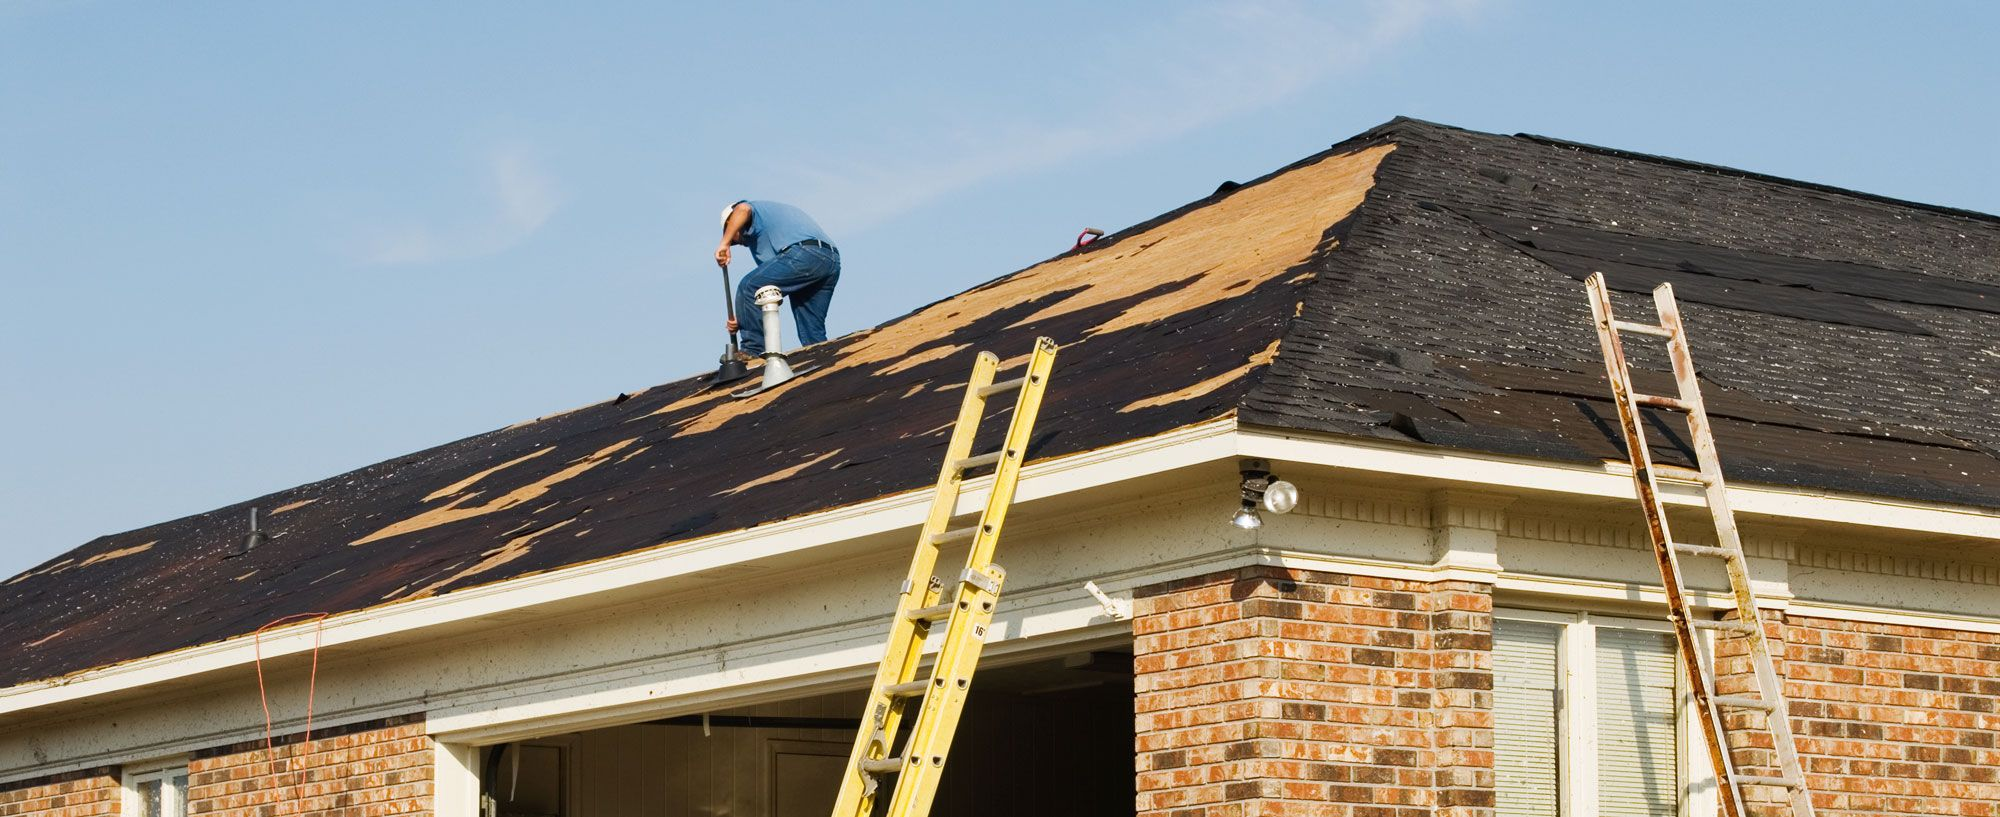 Texas Roofing Leak Repair Provides A Full Range Of Roofing Services For Home And Business Owners That Include Licensed Roof Repair Roofing Services Roofing